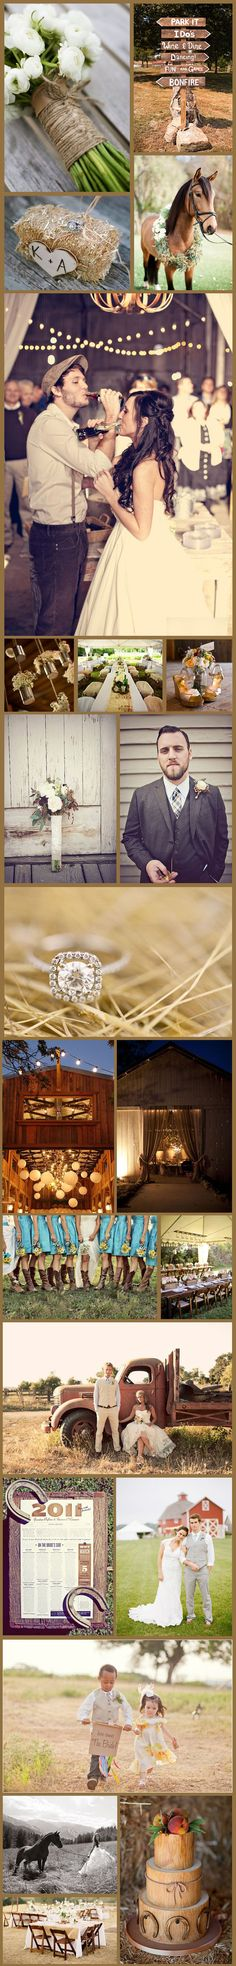 LOVE LOVE LOVE rustic weddings!